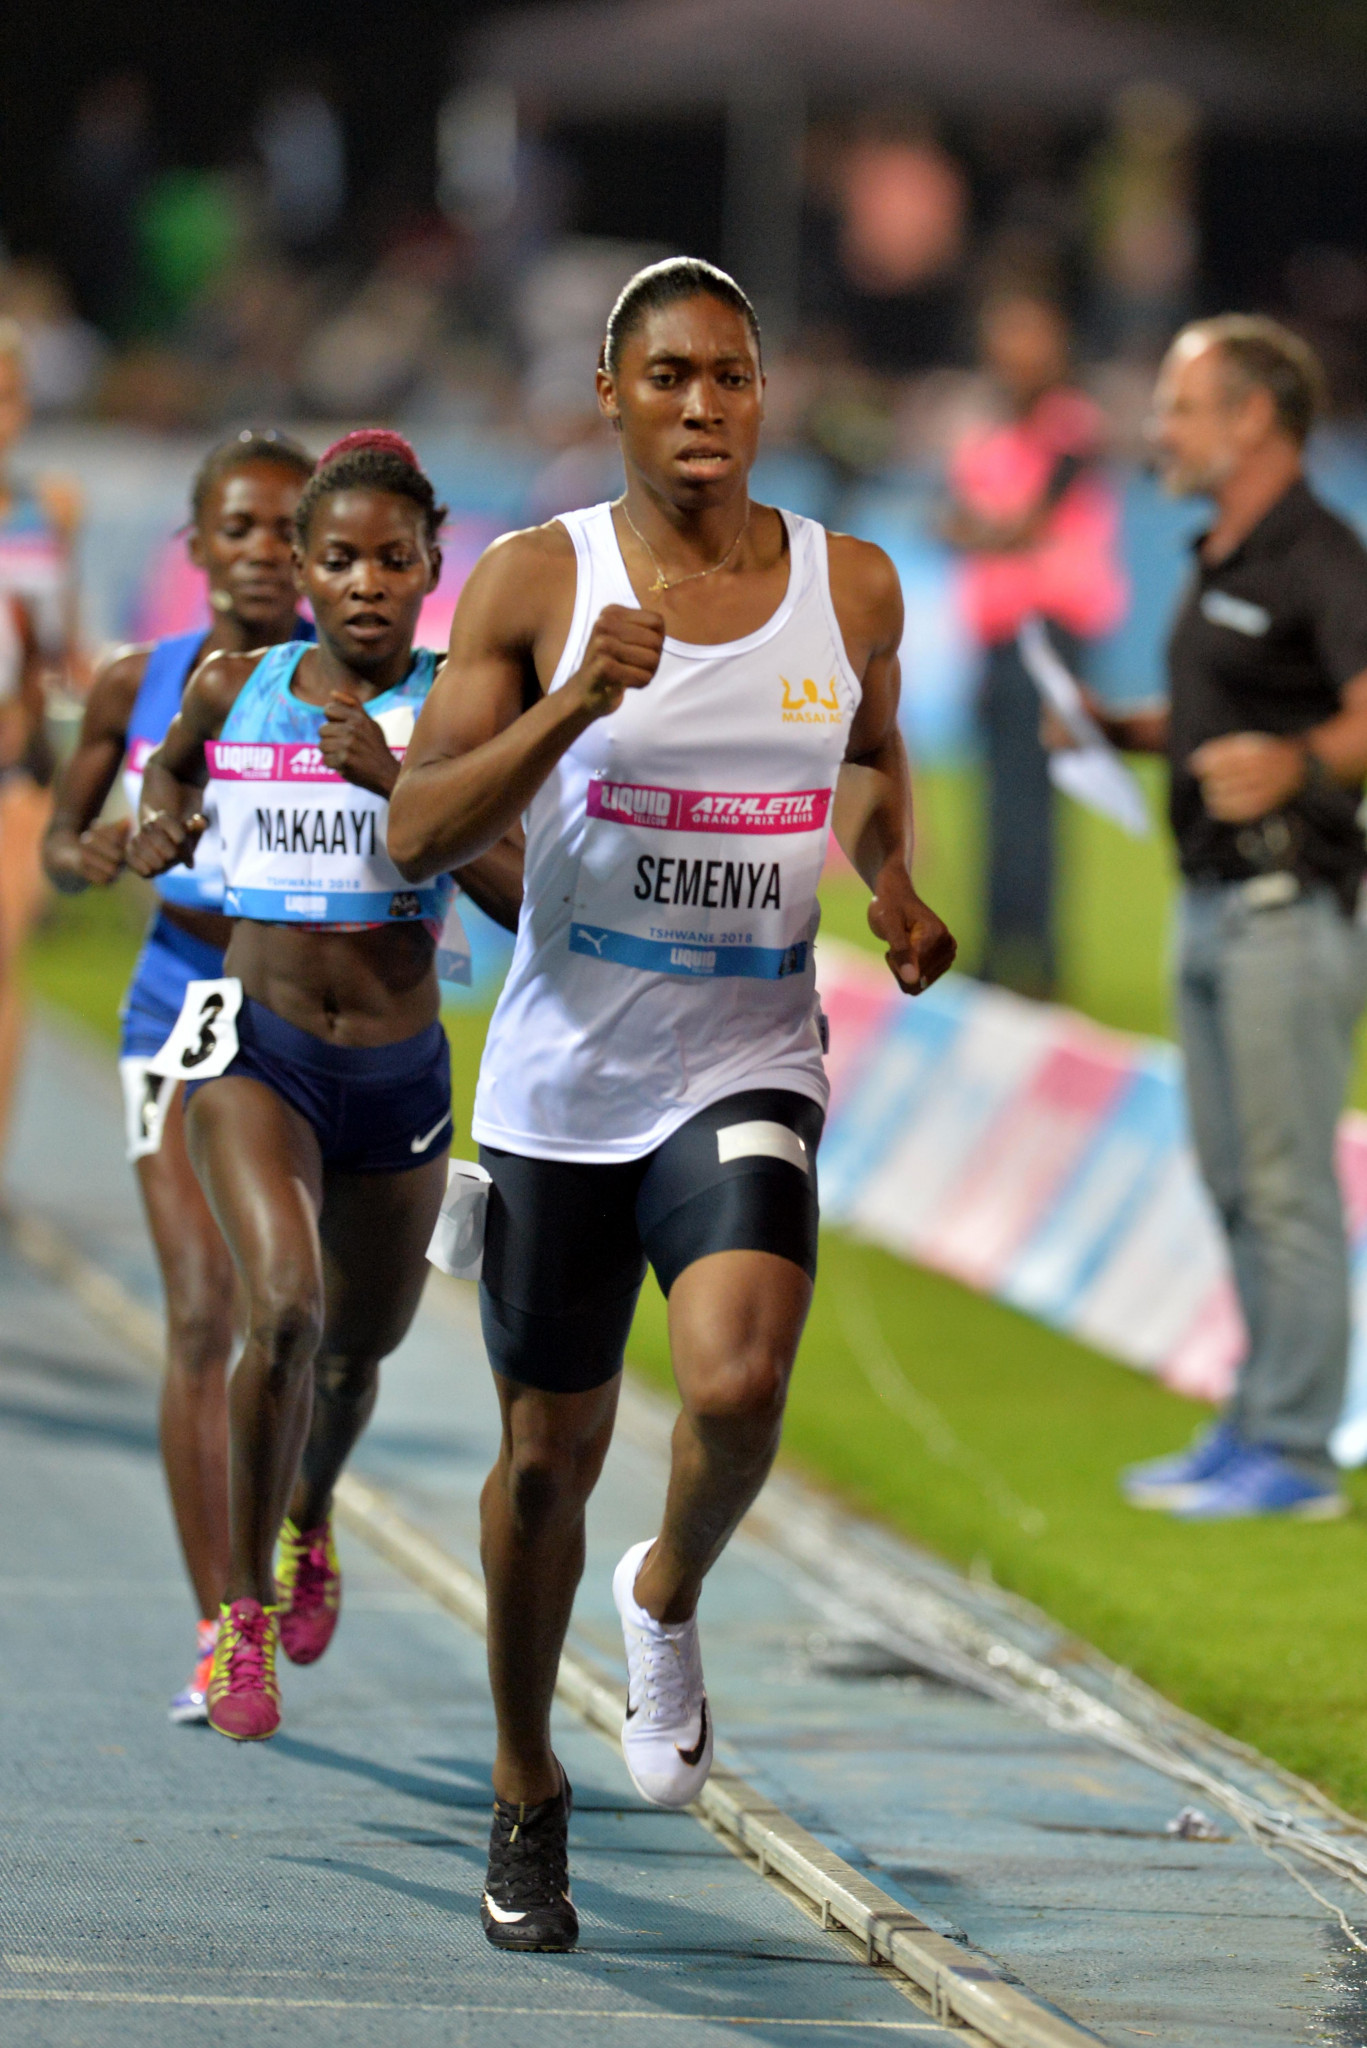 Caster Semenya broke the 35-year-old South African record for 1,000m in Pretoria last week as part of her warm-up for Gold Coast 2018, where she plans to run the 800m and 1500m ©Getty Images